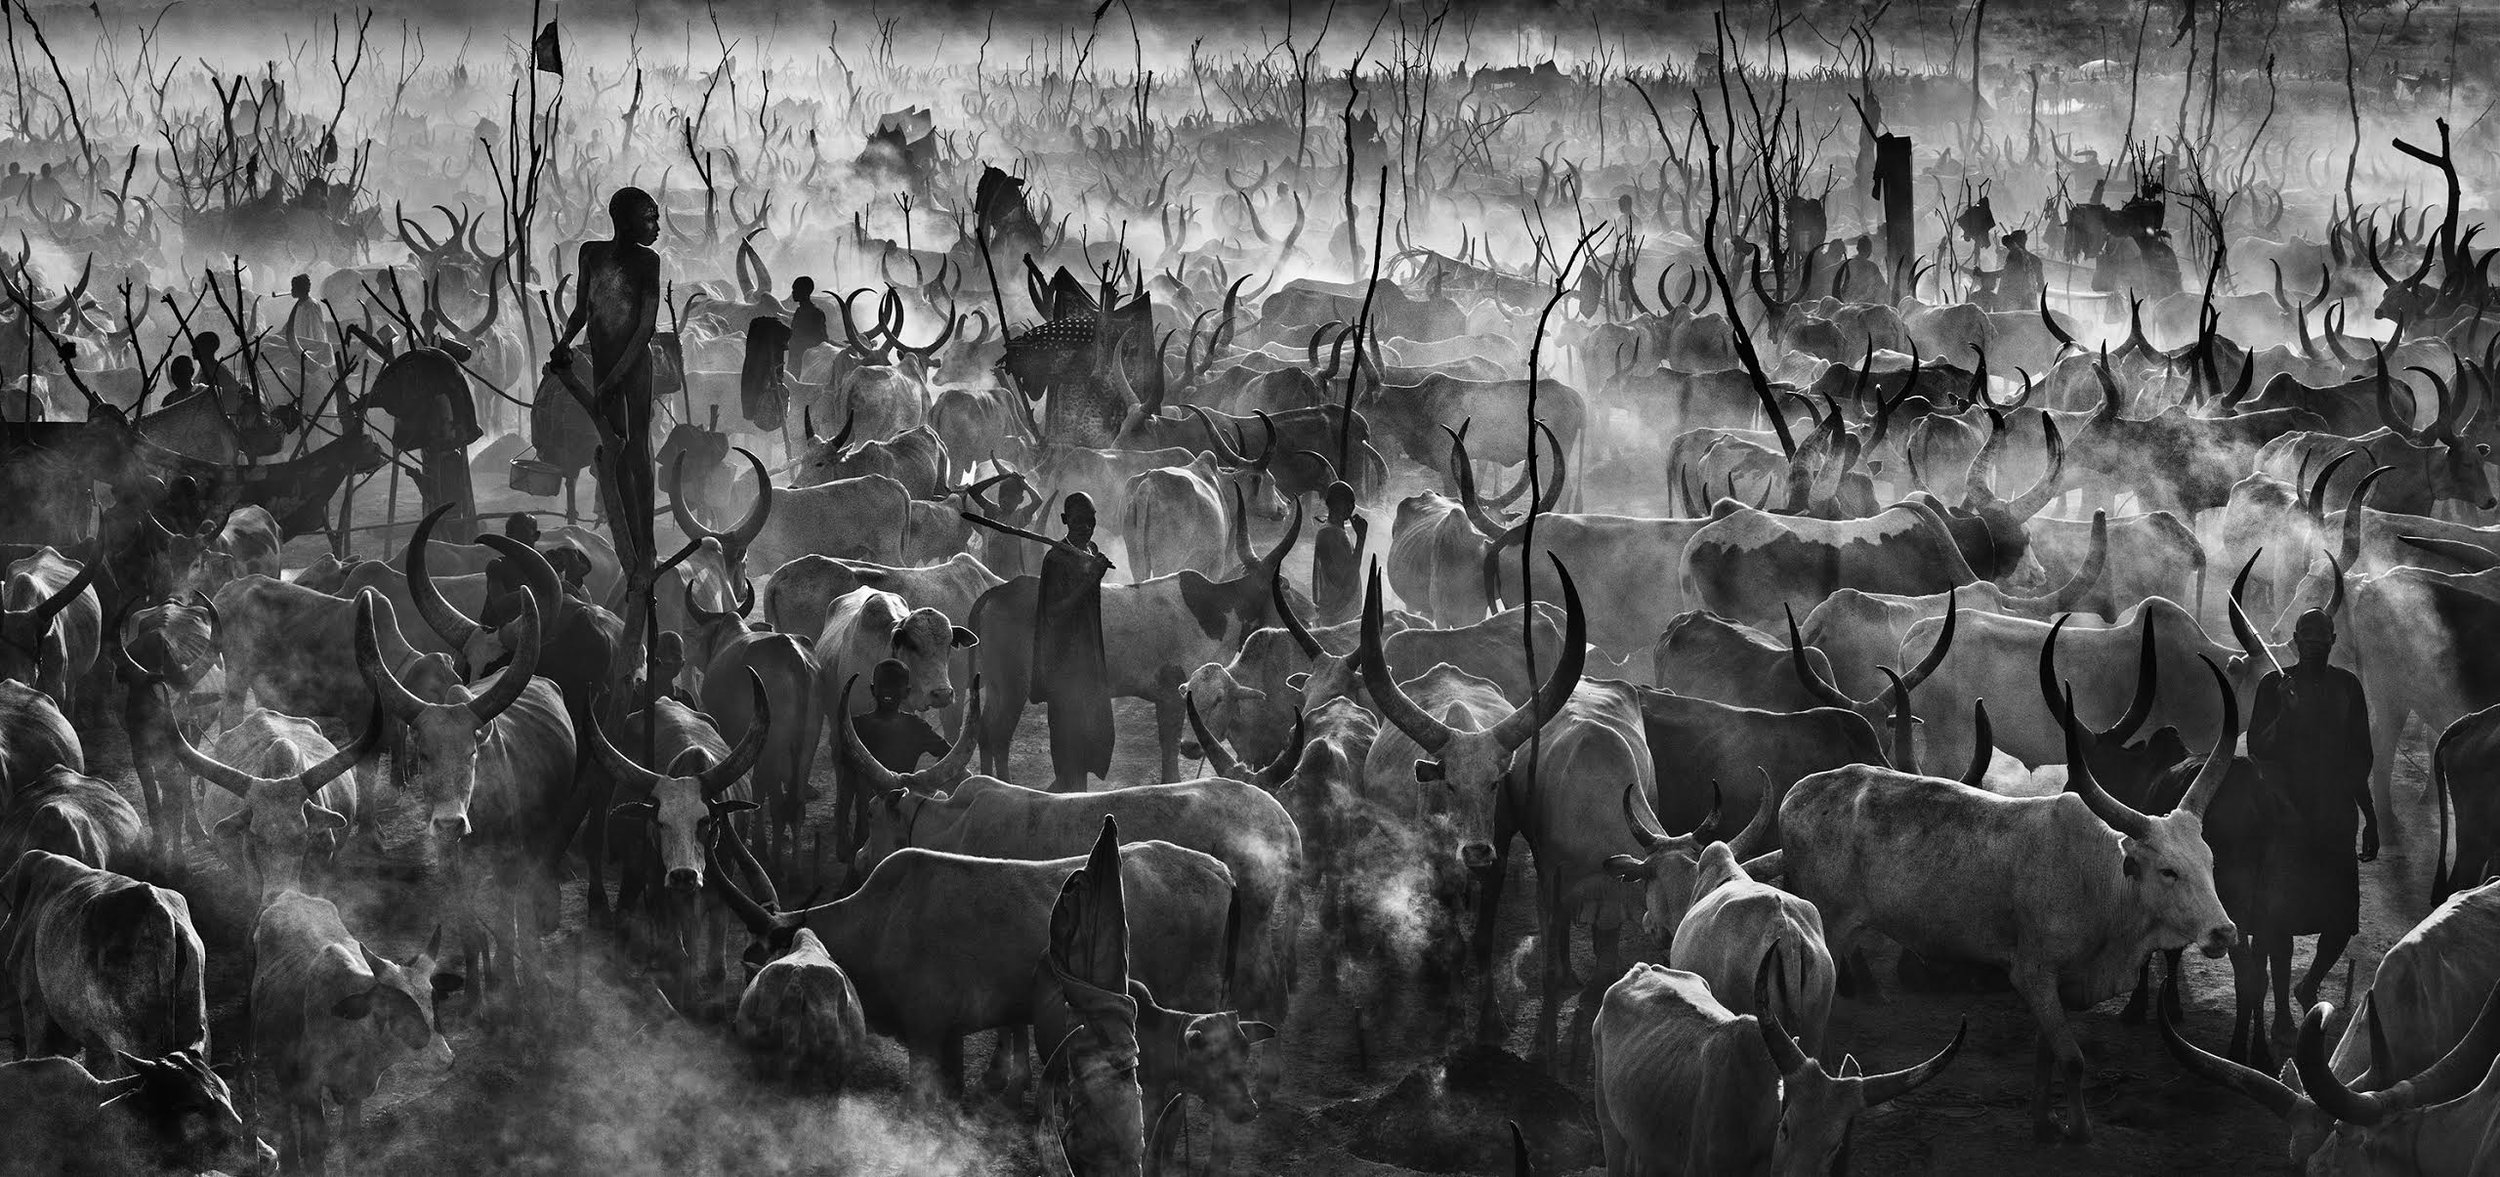 David Yarrow - Mankind, Yirol, South Sudan, 2015.